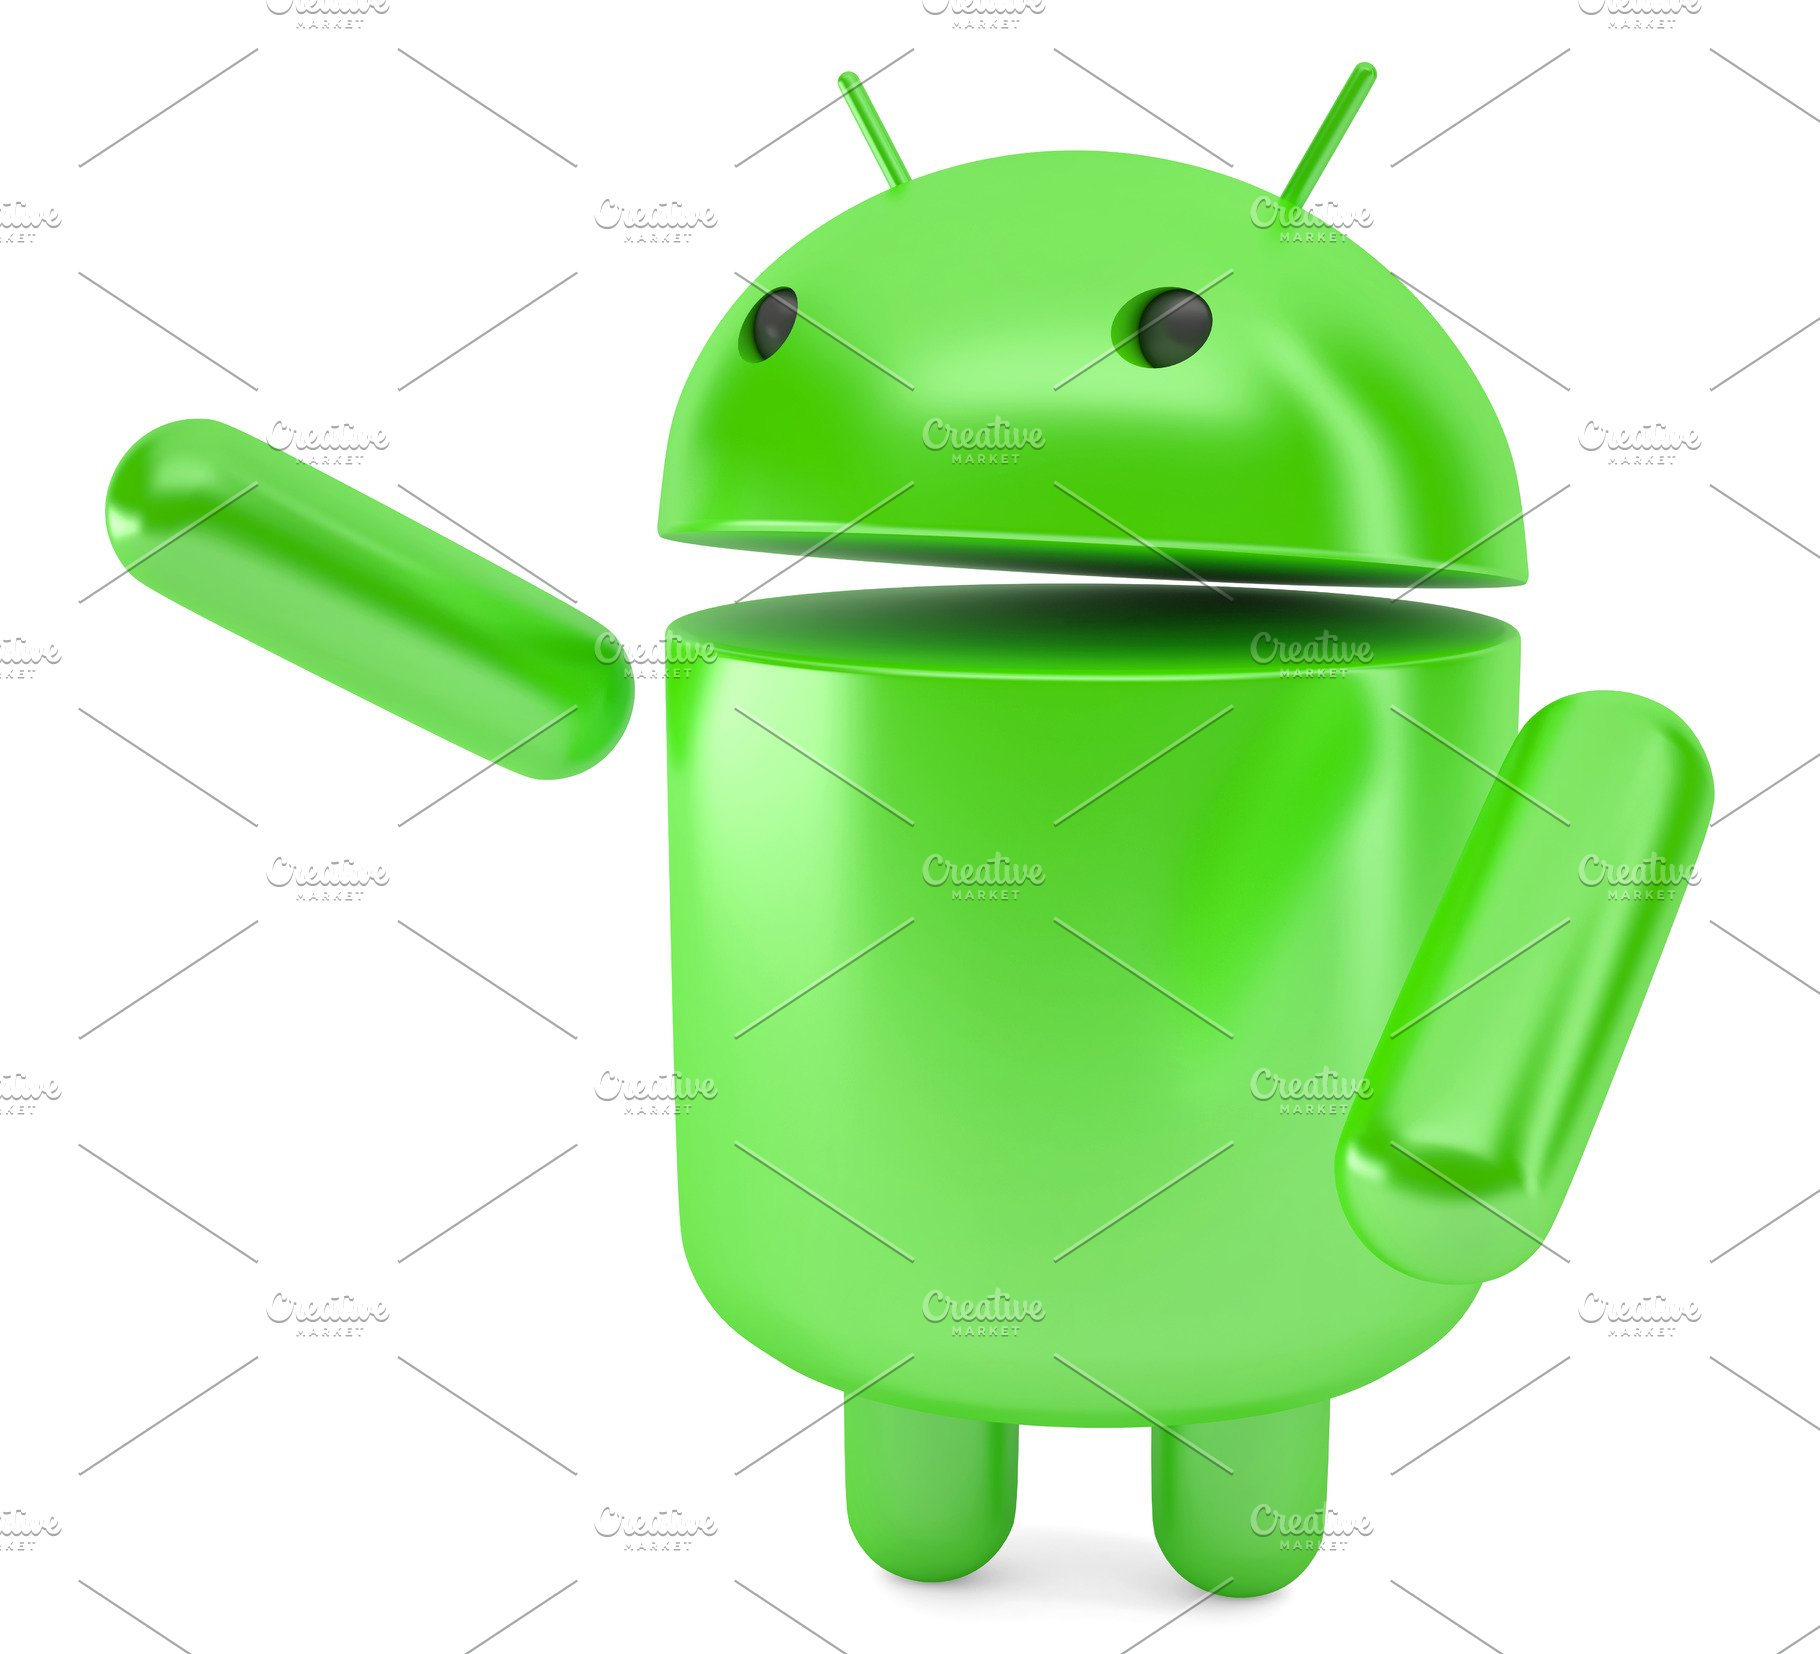 Android pointing at invisible object